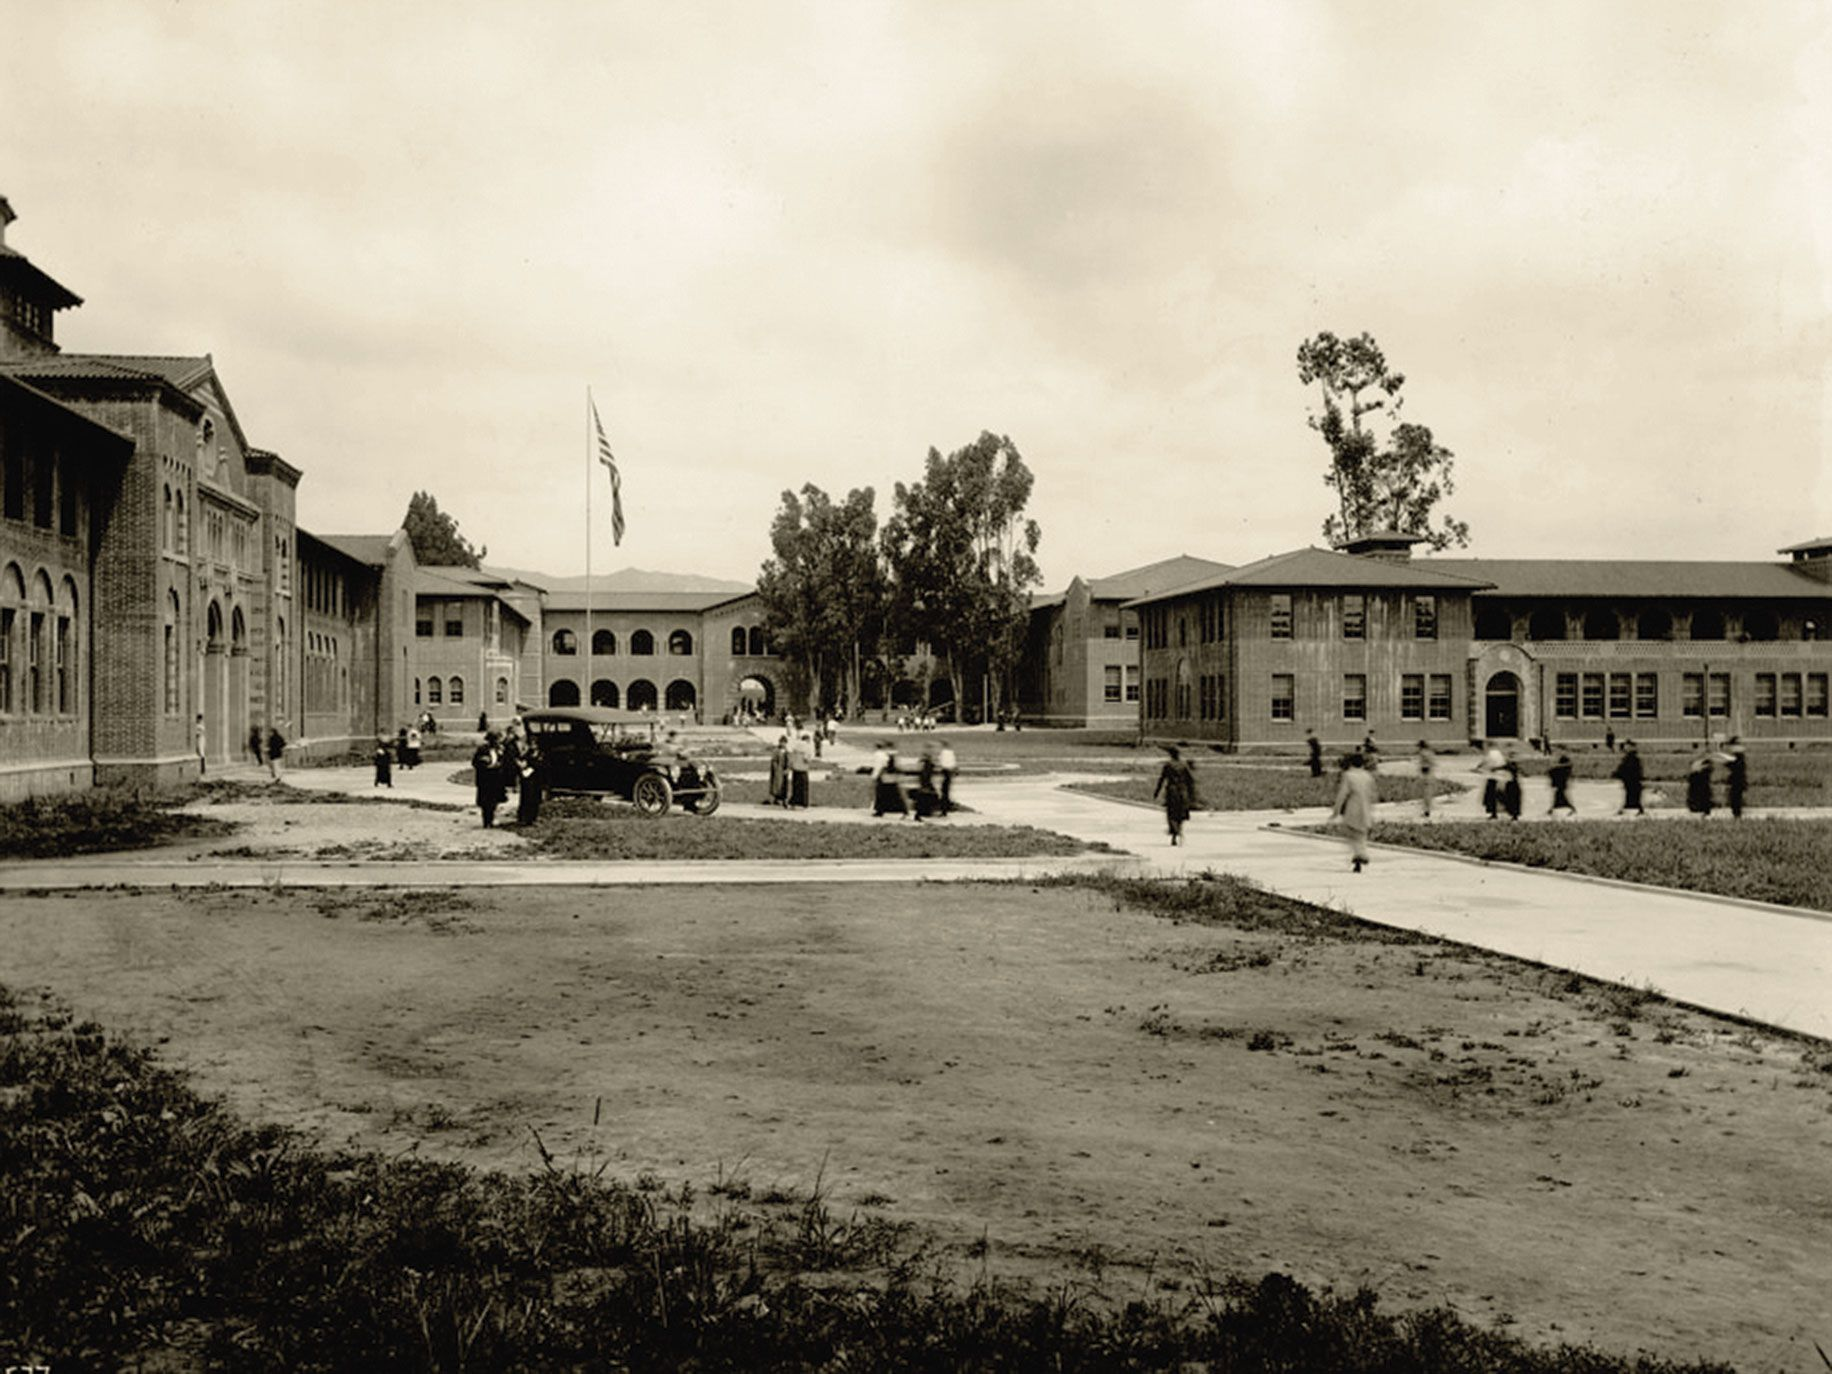 May 23, 1919: The Los Angeles State Normal School, which was founded in 1881, becomes the University of California Los Angeles.